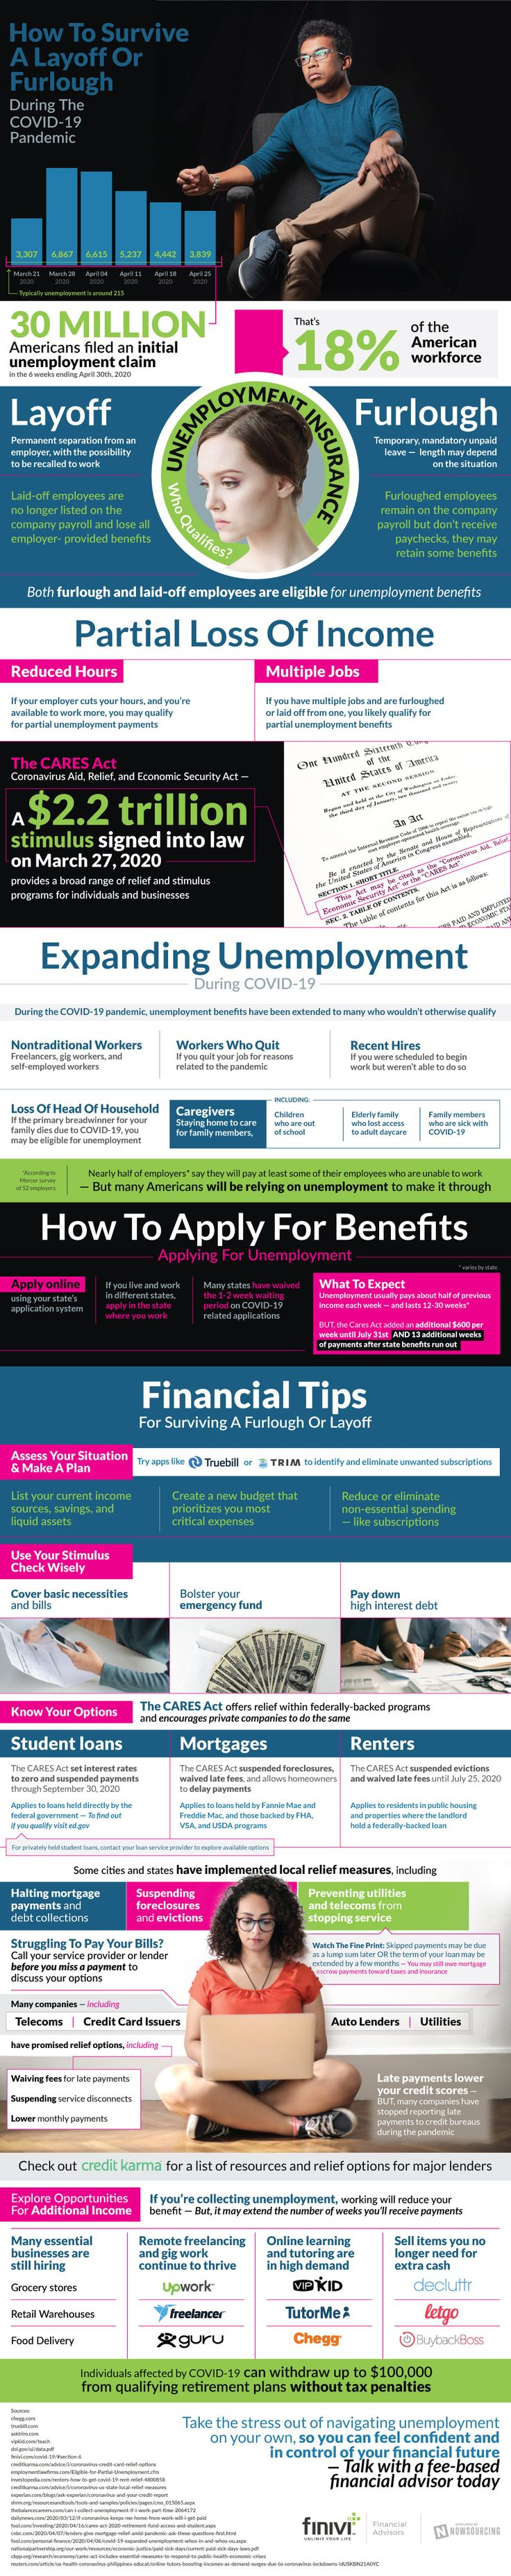 How To Survive a Layoff or Furlough [Infographic] in 2020